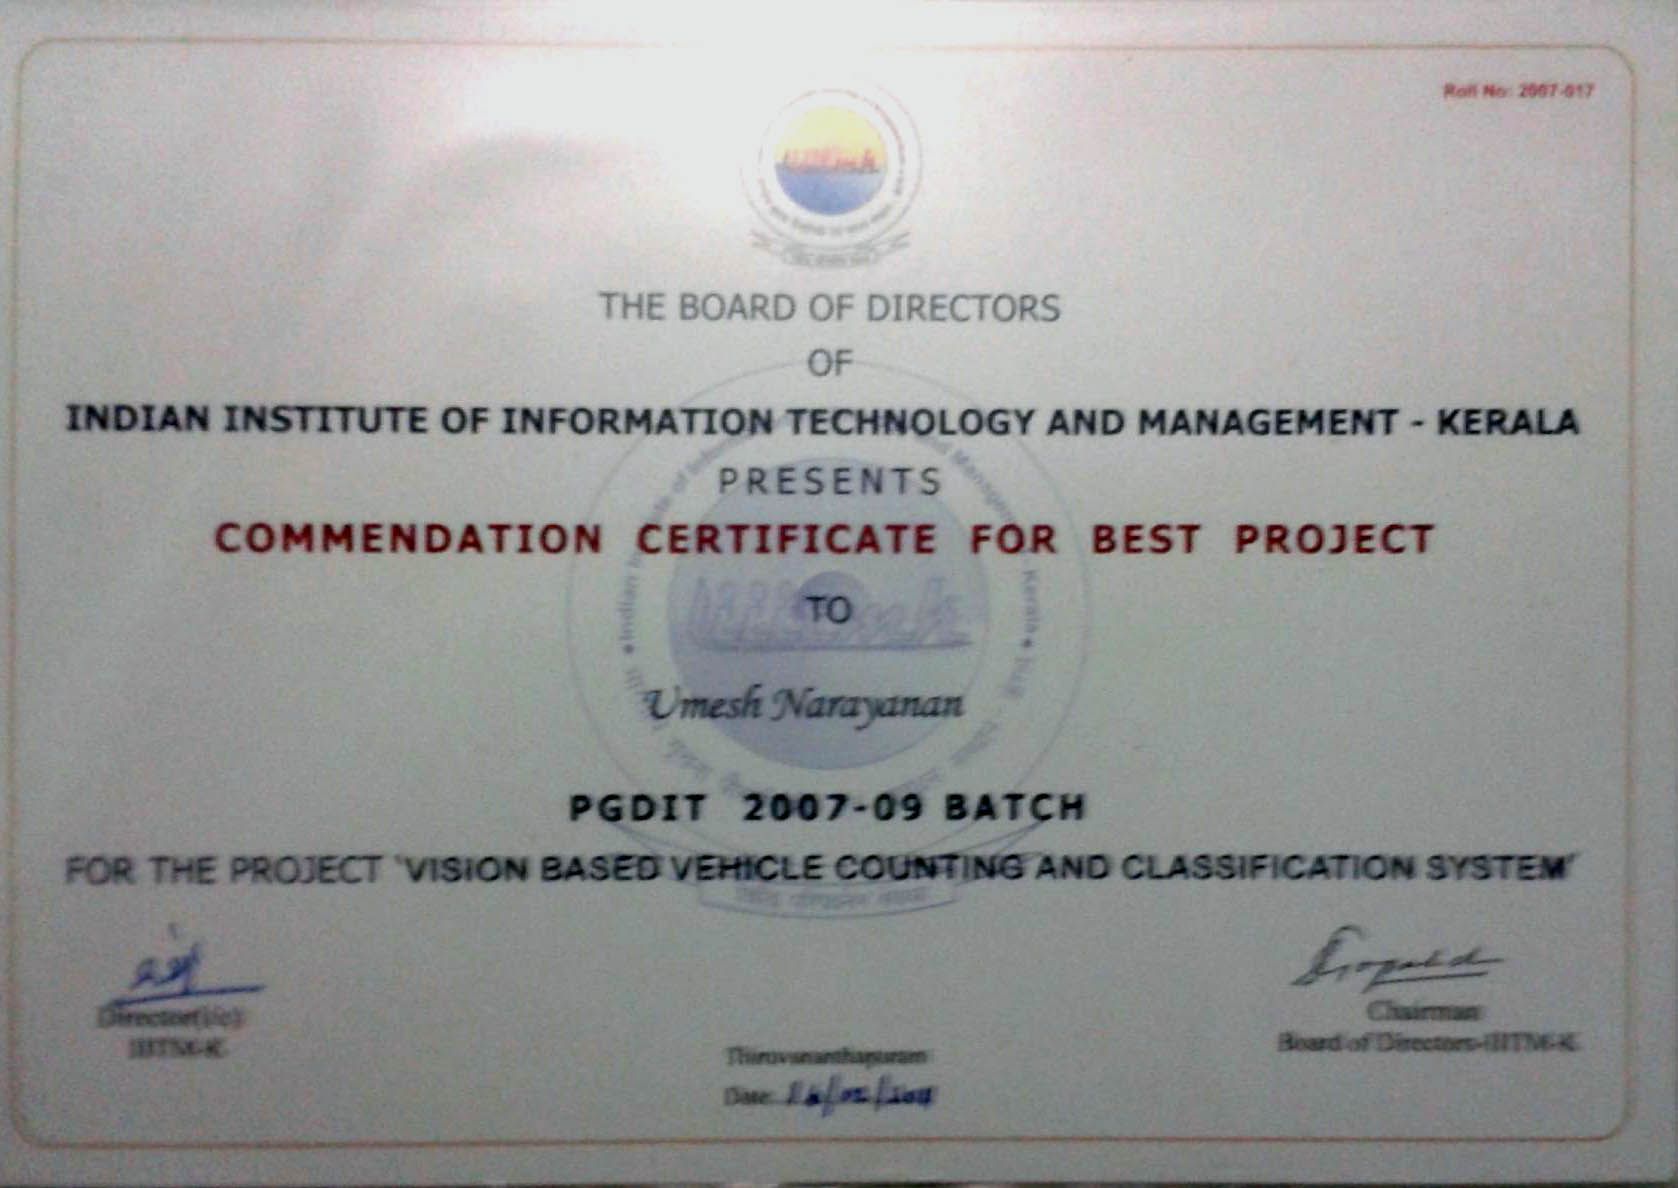 Projects Vision Based Vehicle Counting and